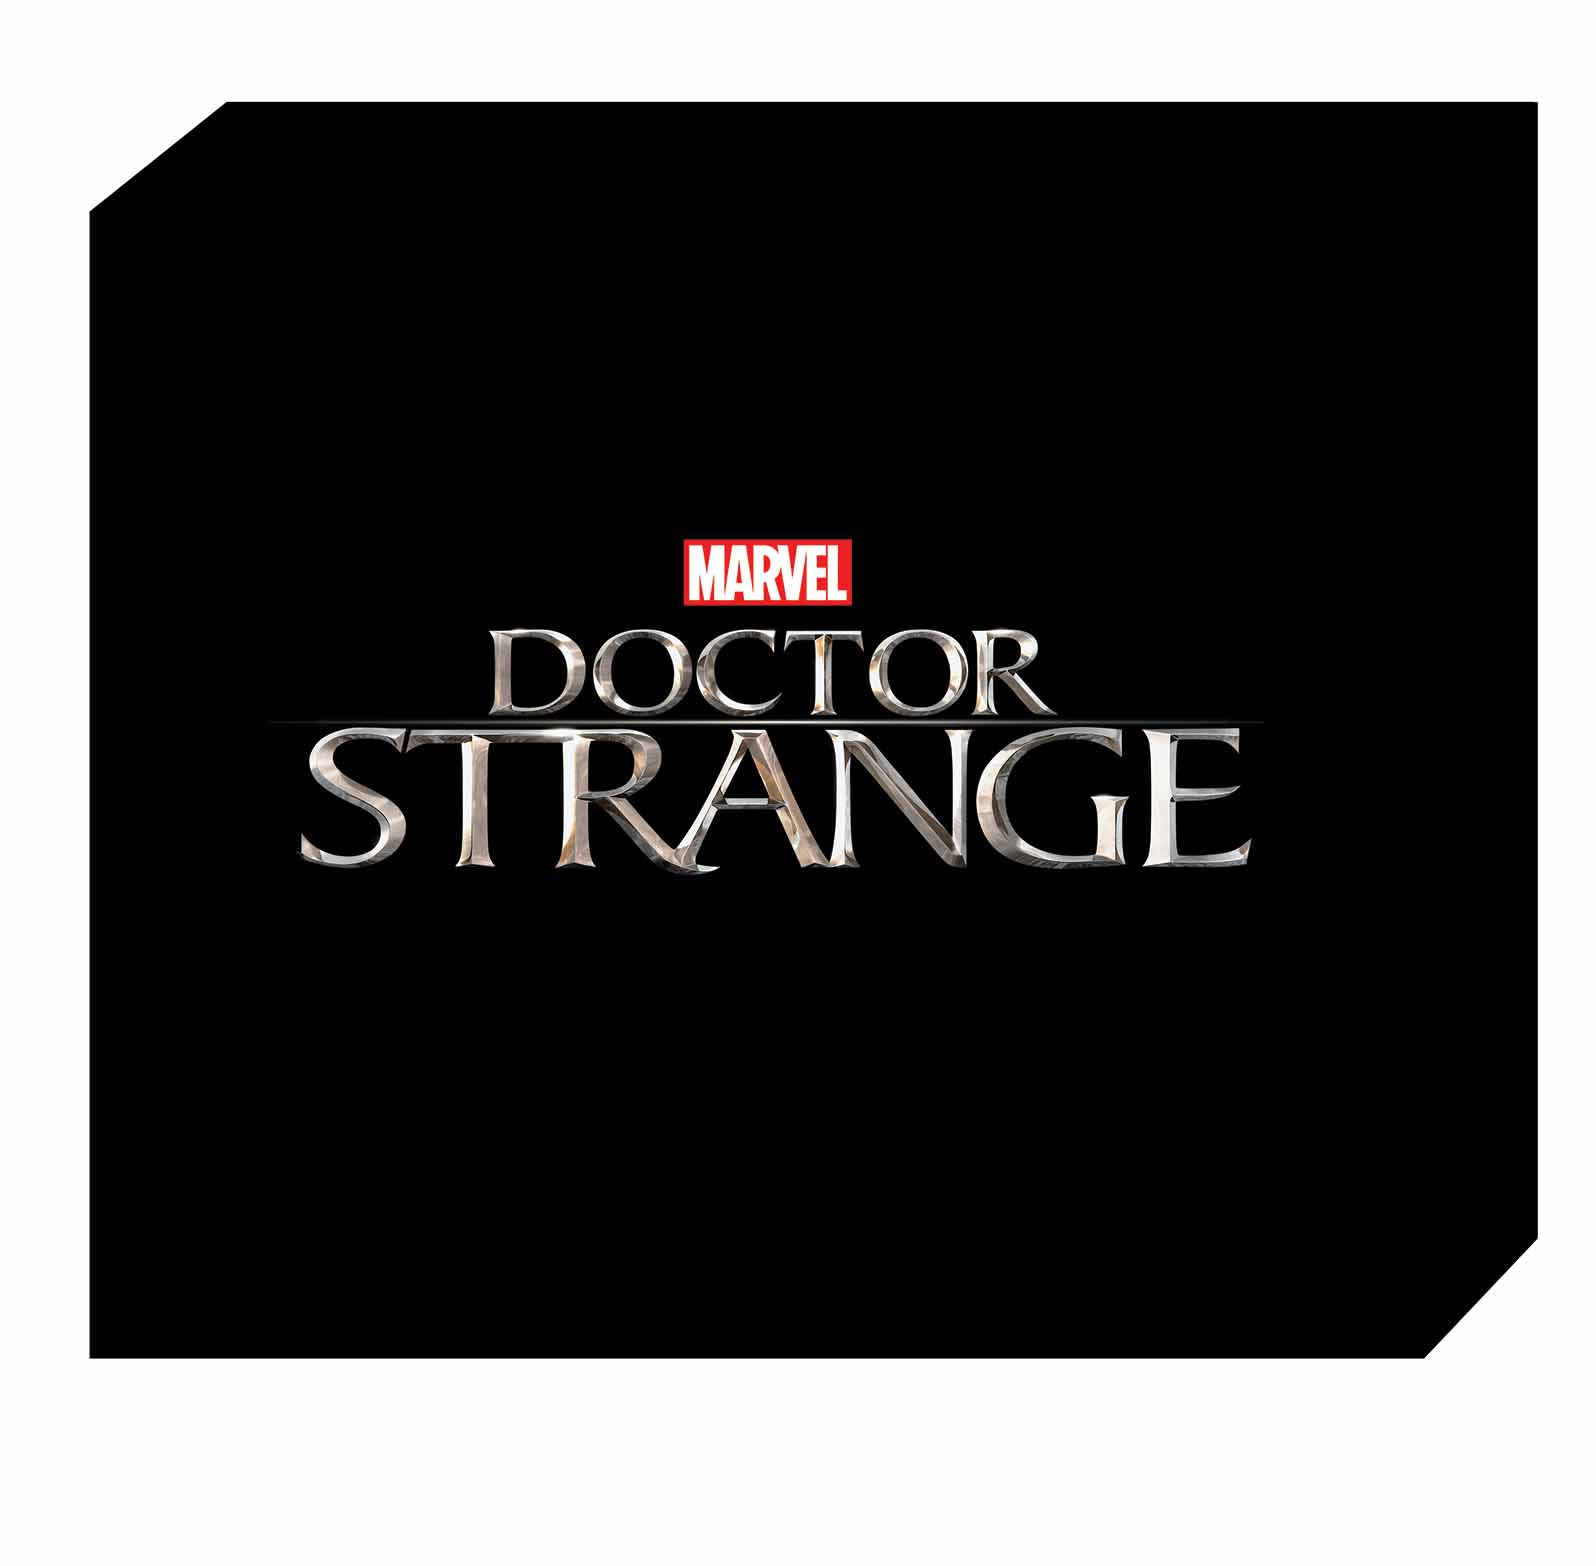 Marvel's Doctor Strange: The Art of the Movie HC Slipcase (Hardcover)